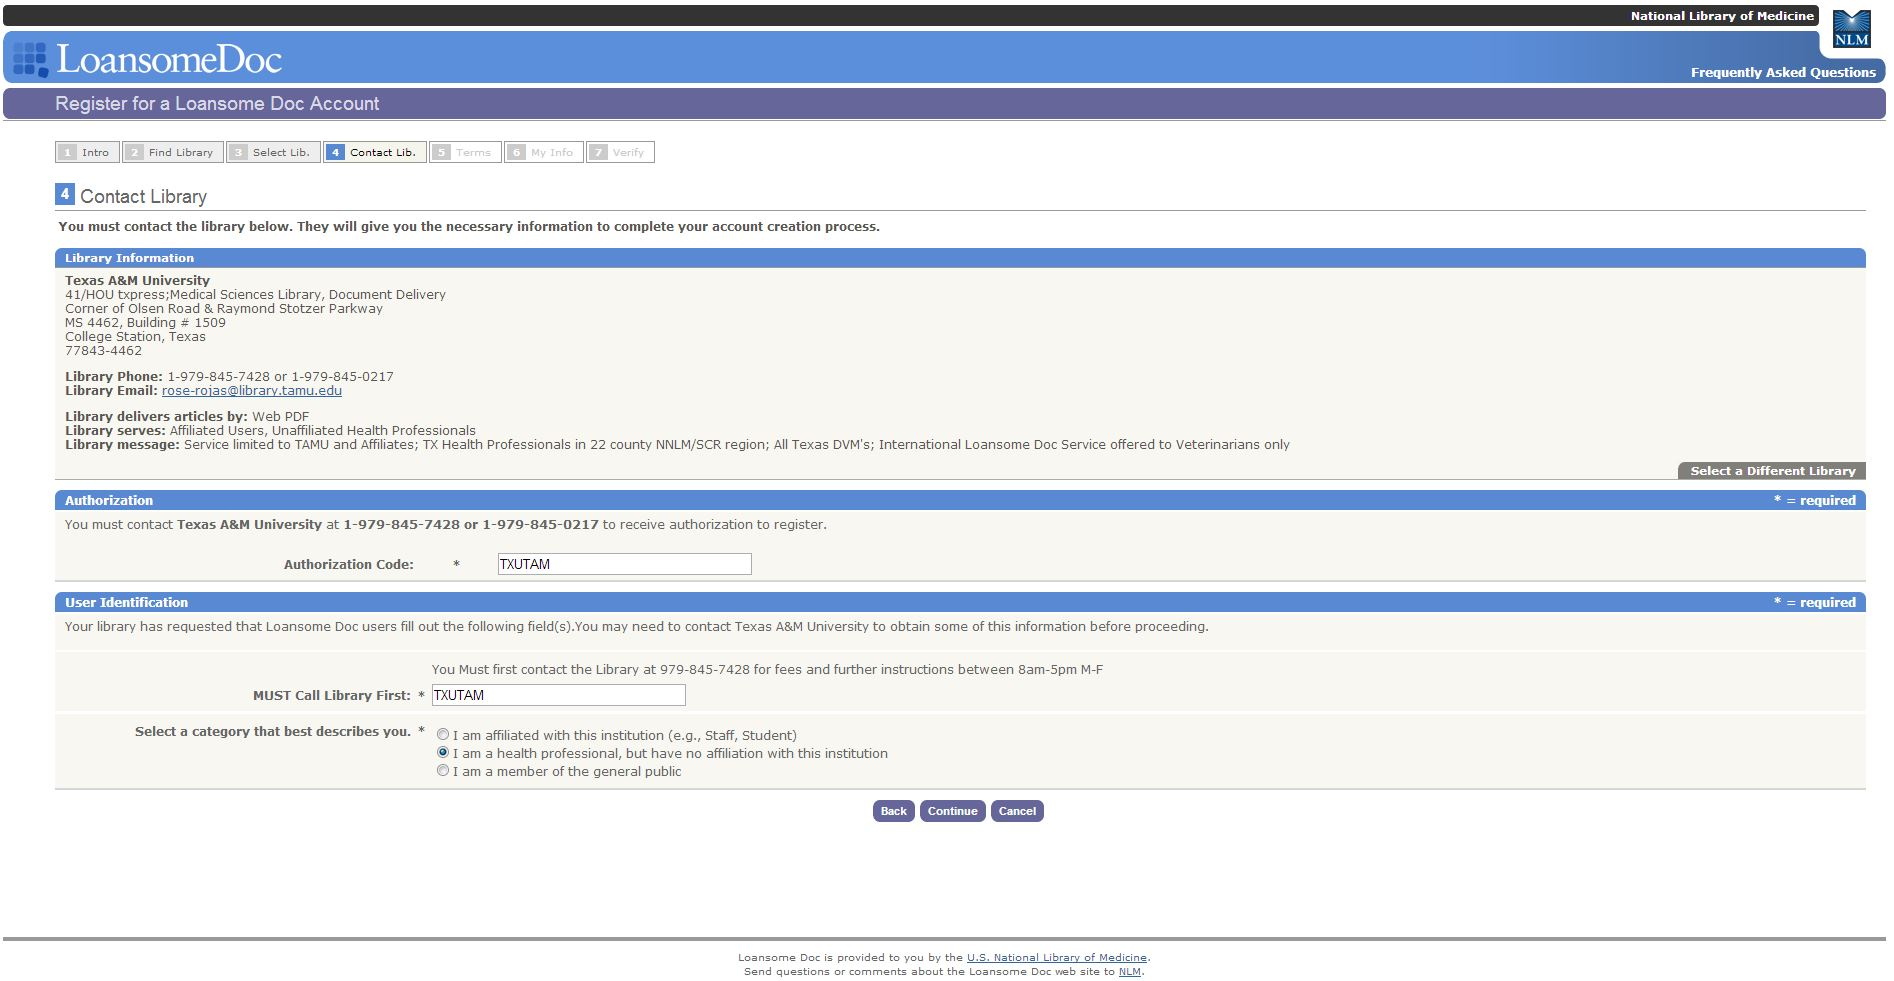 Image of LoansomeDoc authorization code and must call library first fields.